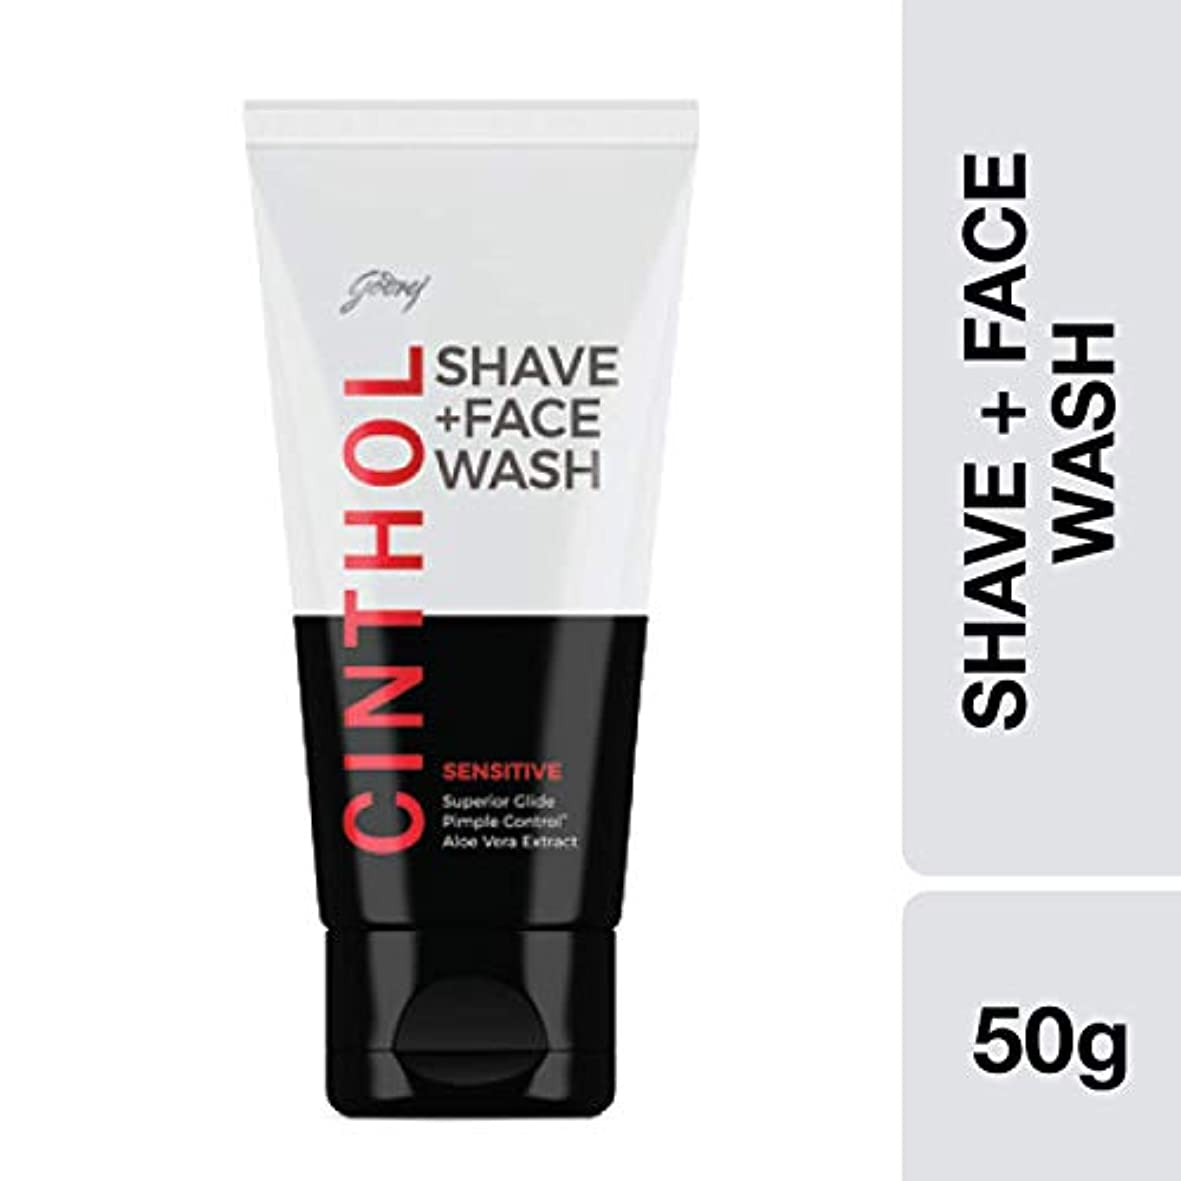 Cinthol Sensitive Shaving + Face Wash, 50g